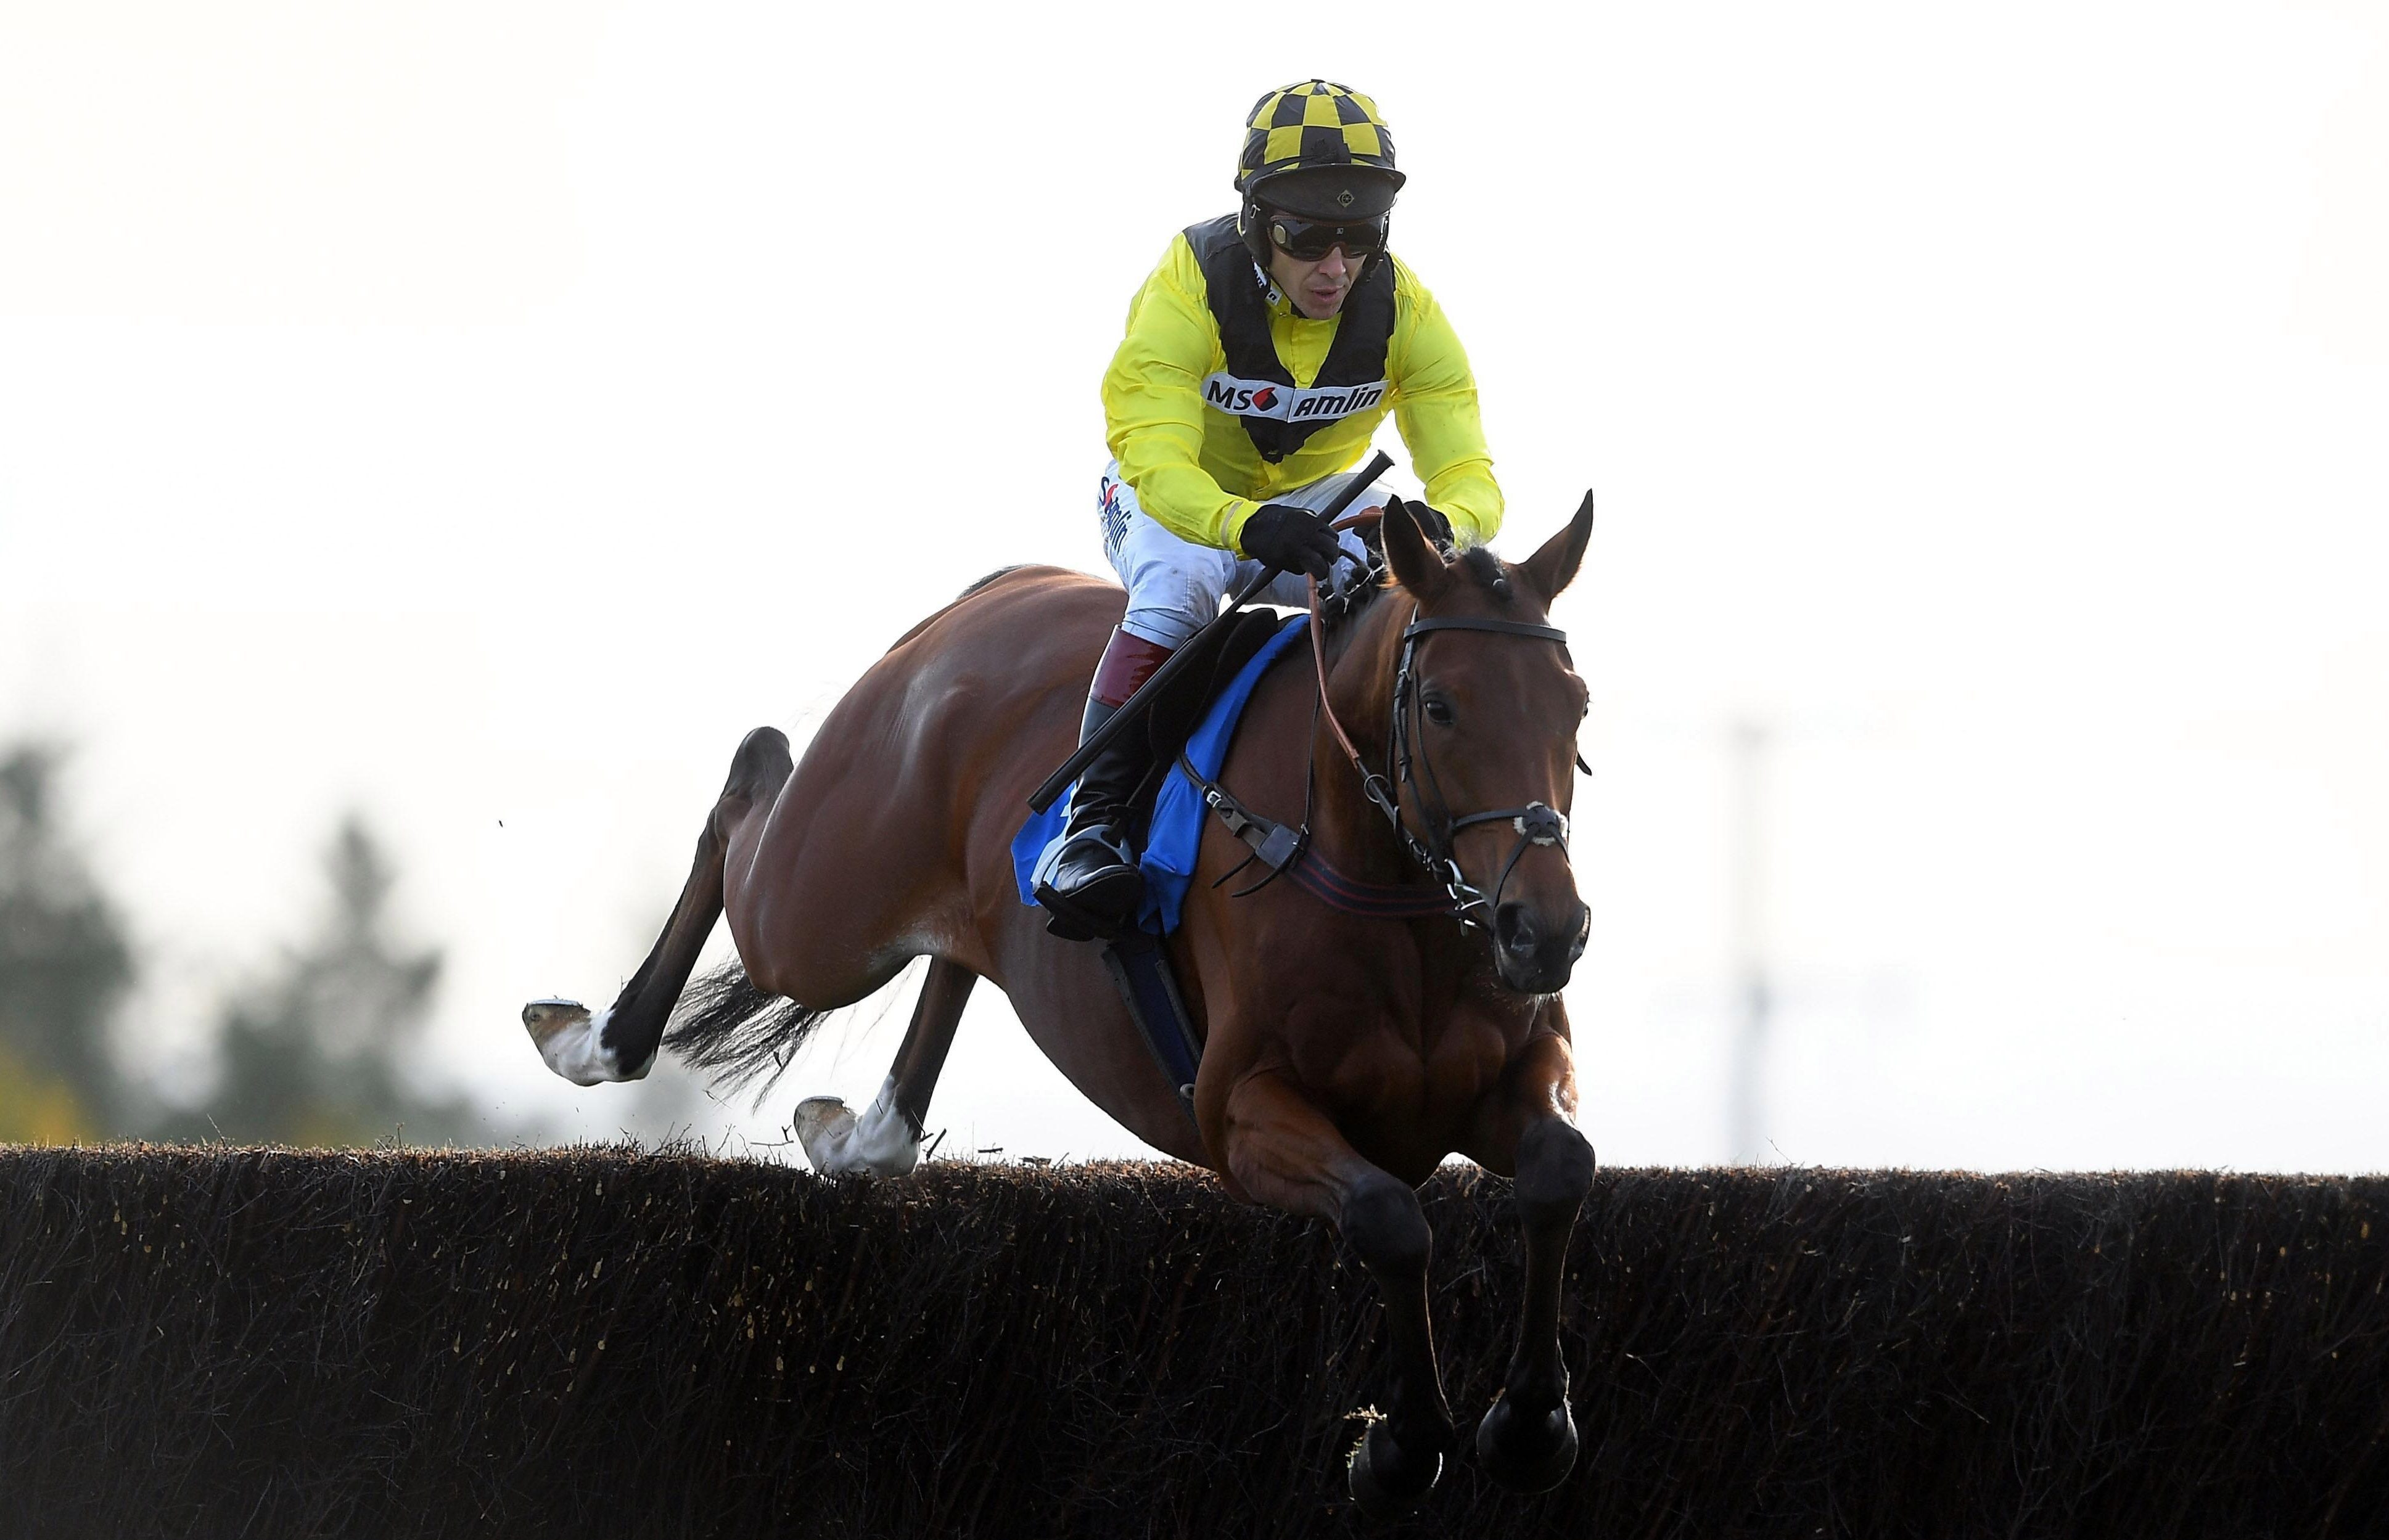 Best horse racing tips for today's action at Sedgefield, Exeter, Sandown and Kempton from Tom Bull